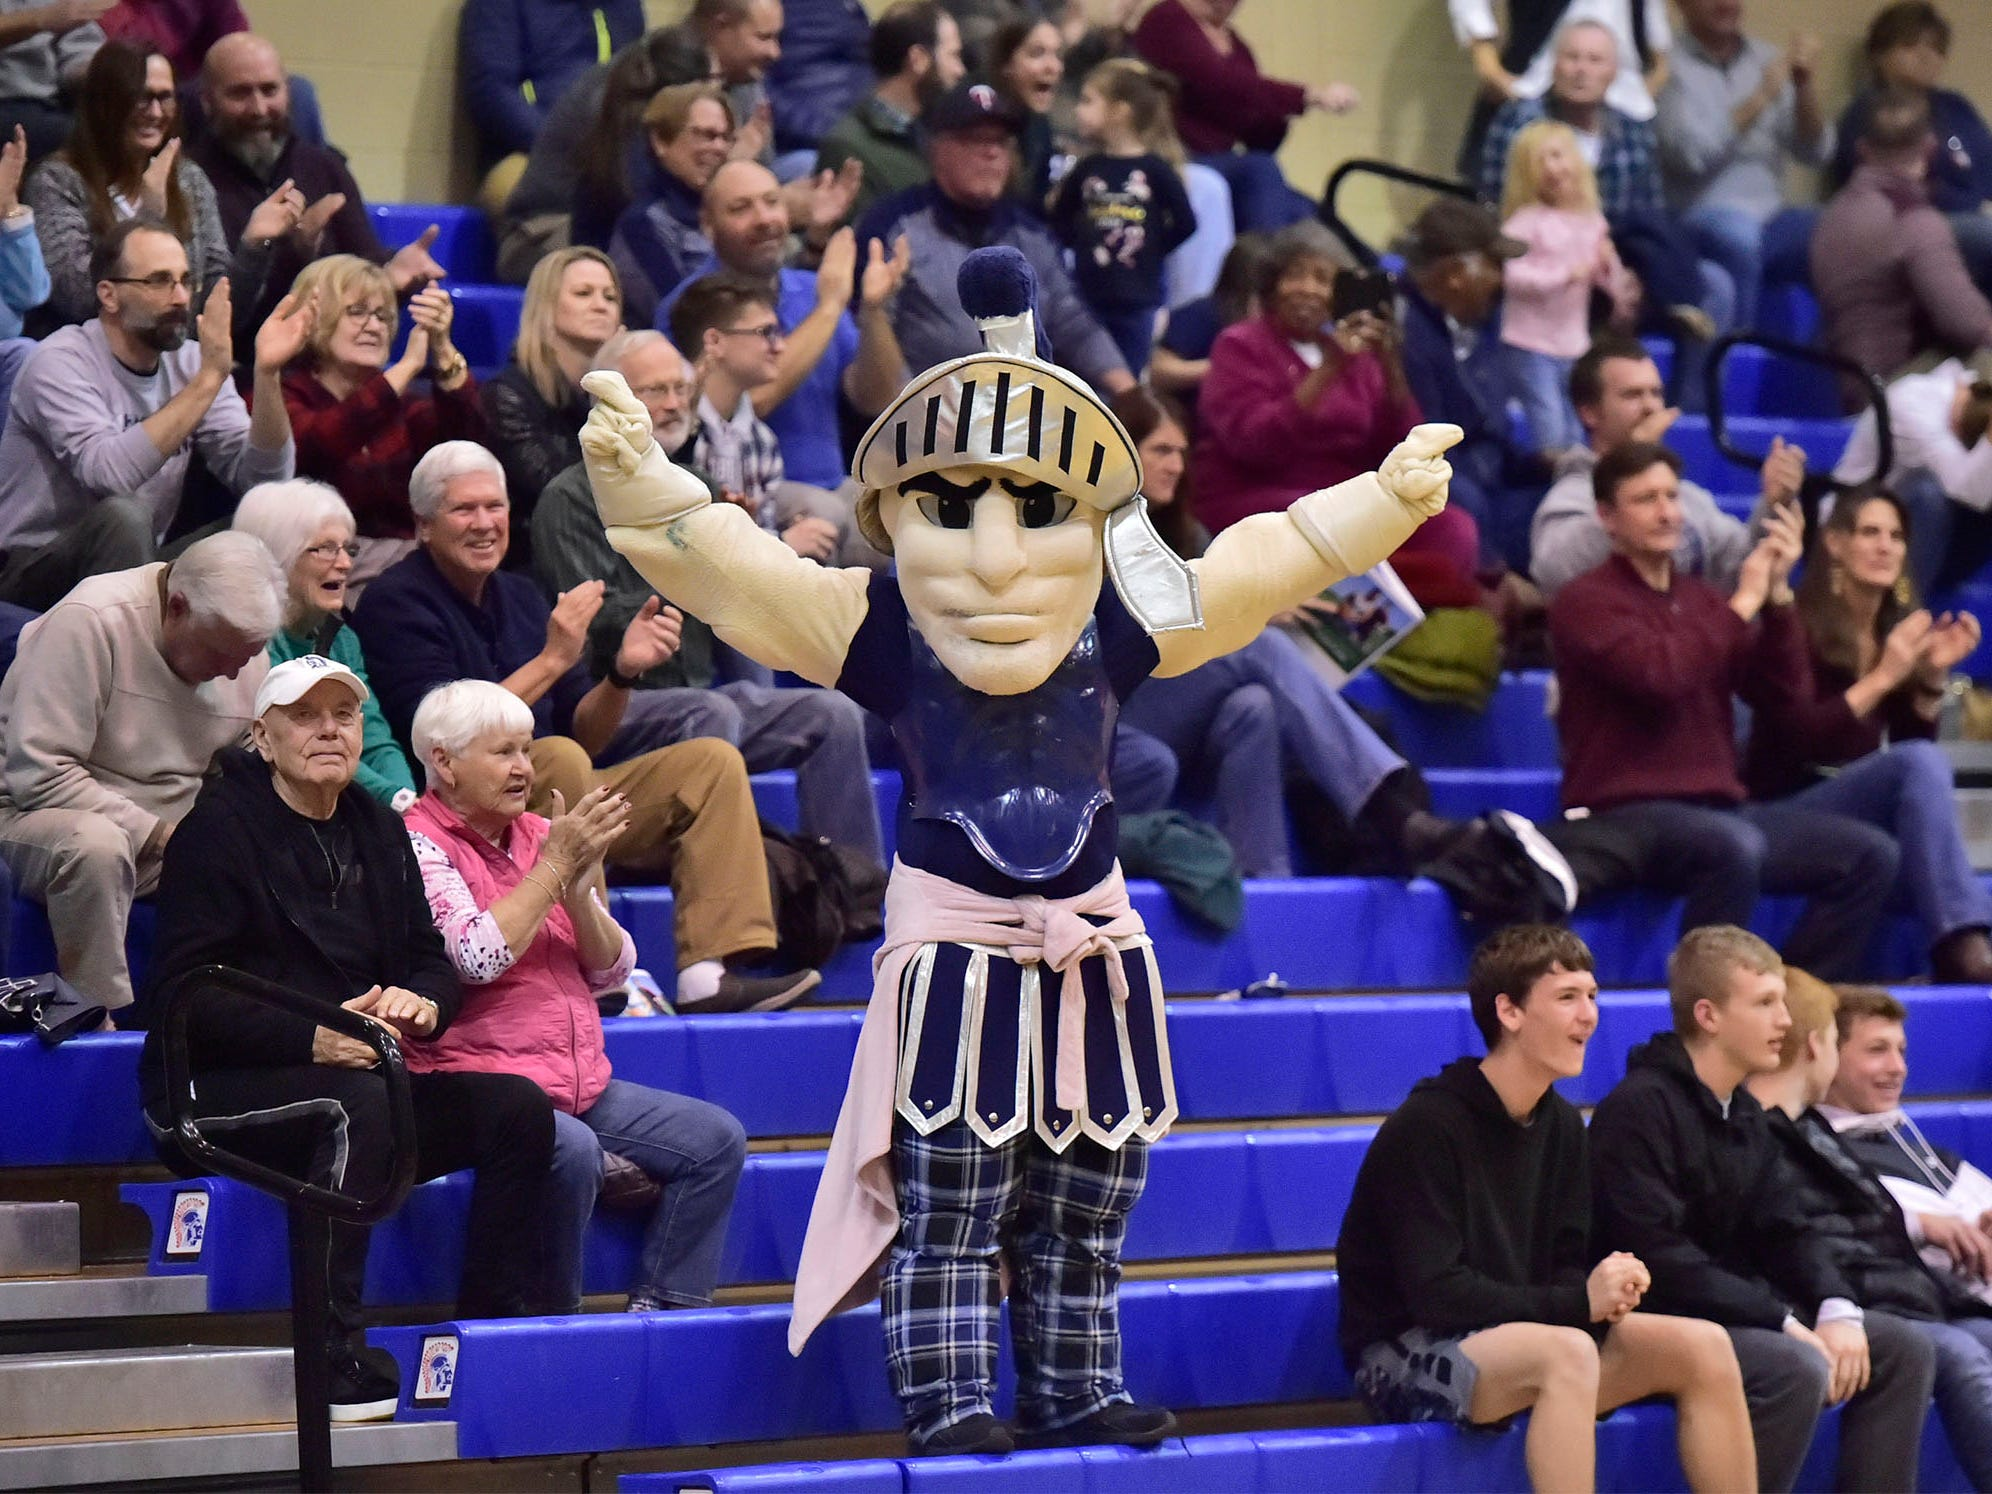 The Chambersburg Trojan mascot entertains the crowd. Chambersburg dropped a buzzer beater 42-40 to State College during a District 3 basketball, Friday, Dec. 14, 2018.